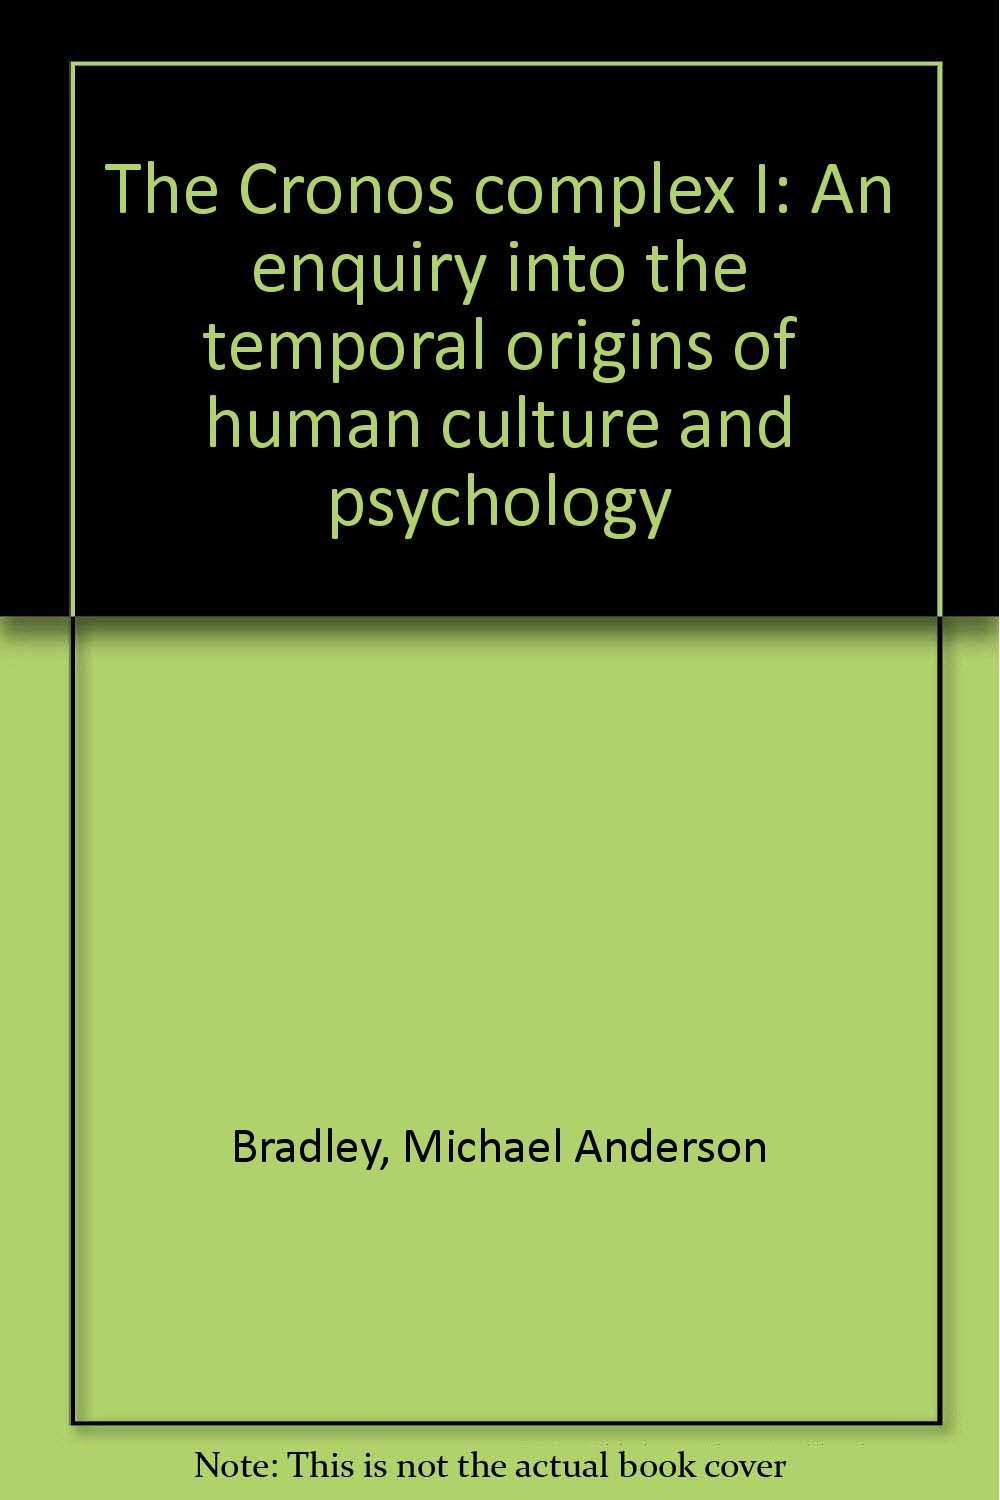 The Cronosplex I: An Enquiry Into The Temporal Origins Of Human Culture  And Psychology: Michael Anderson Bradley: 9780919324138: Amazon: Books